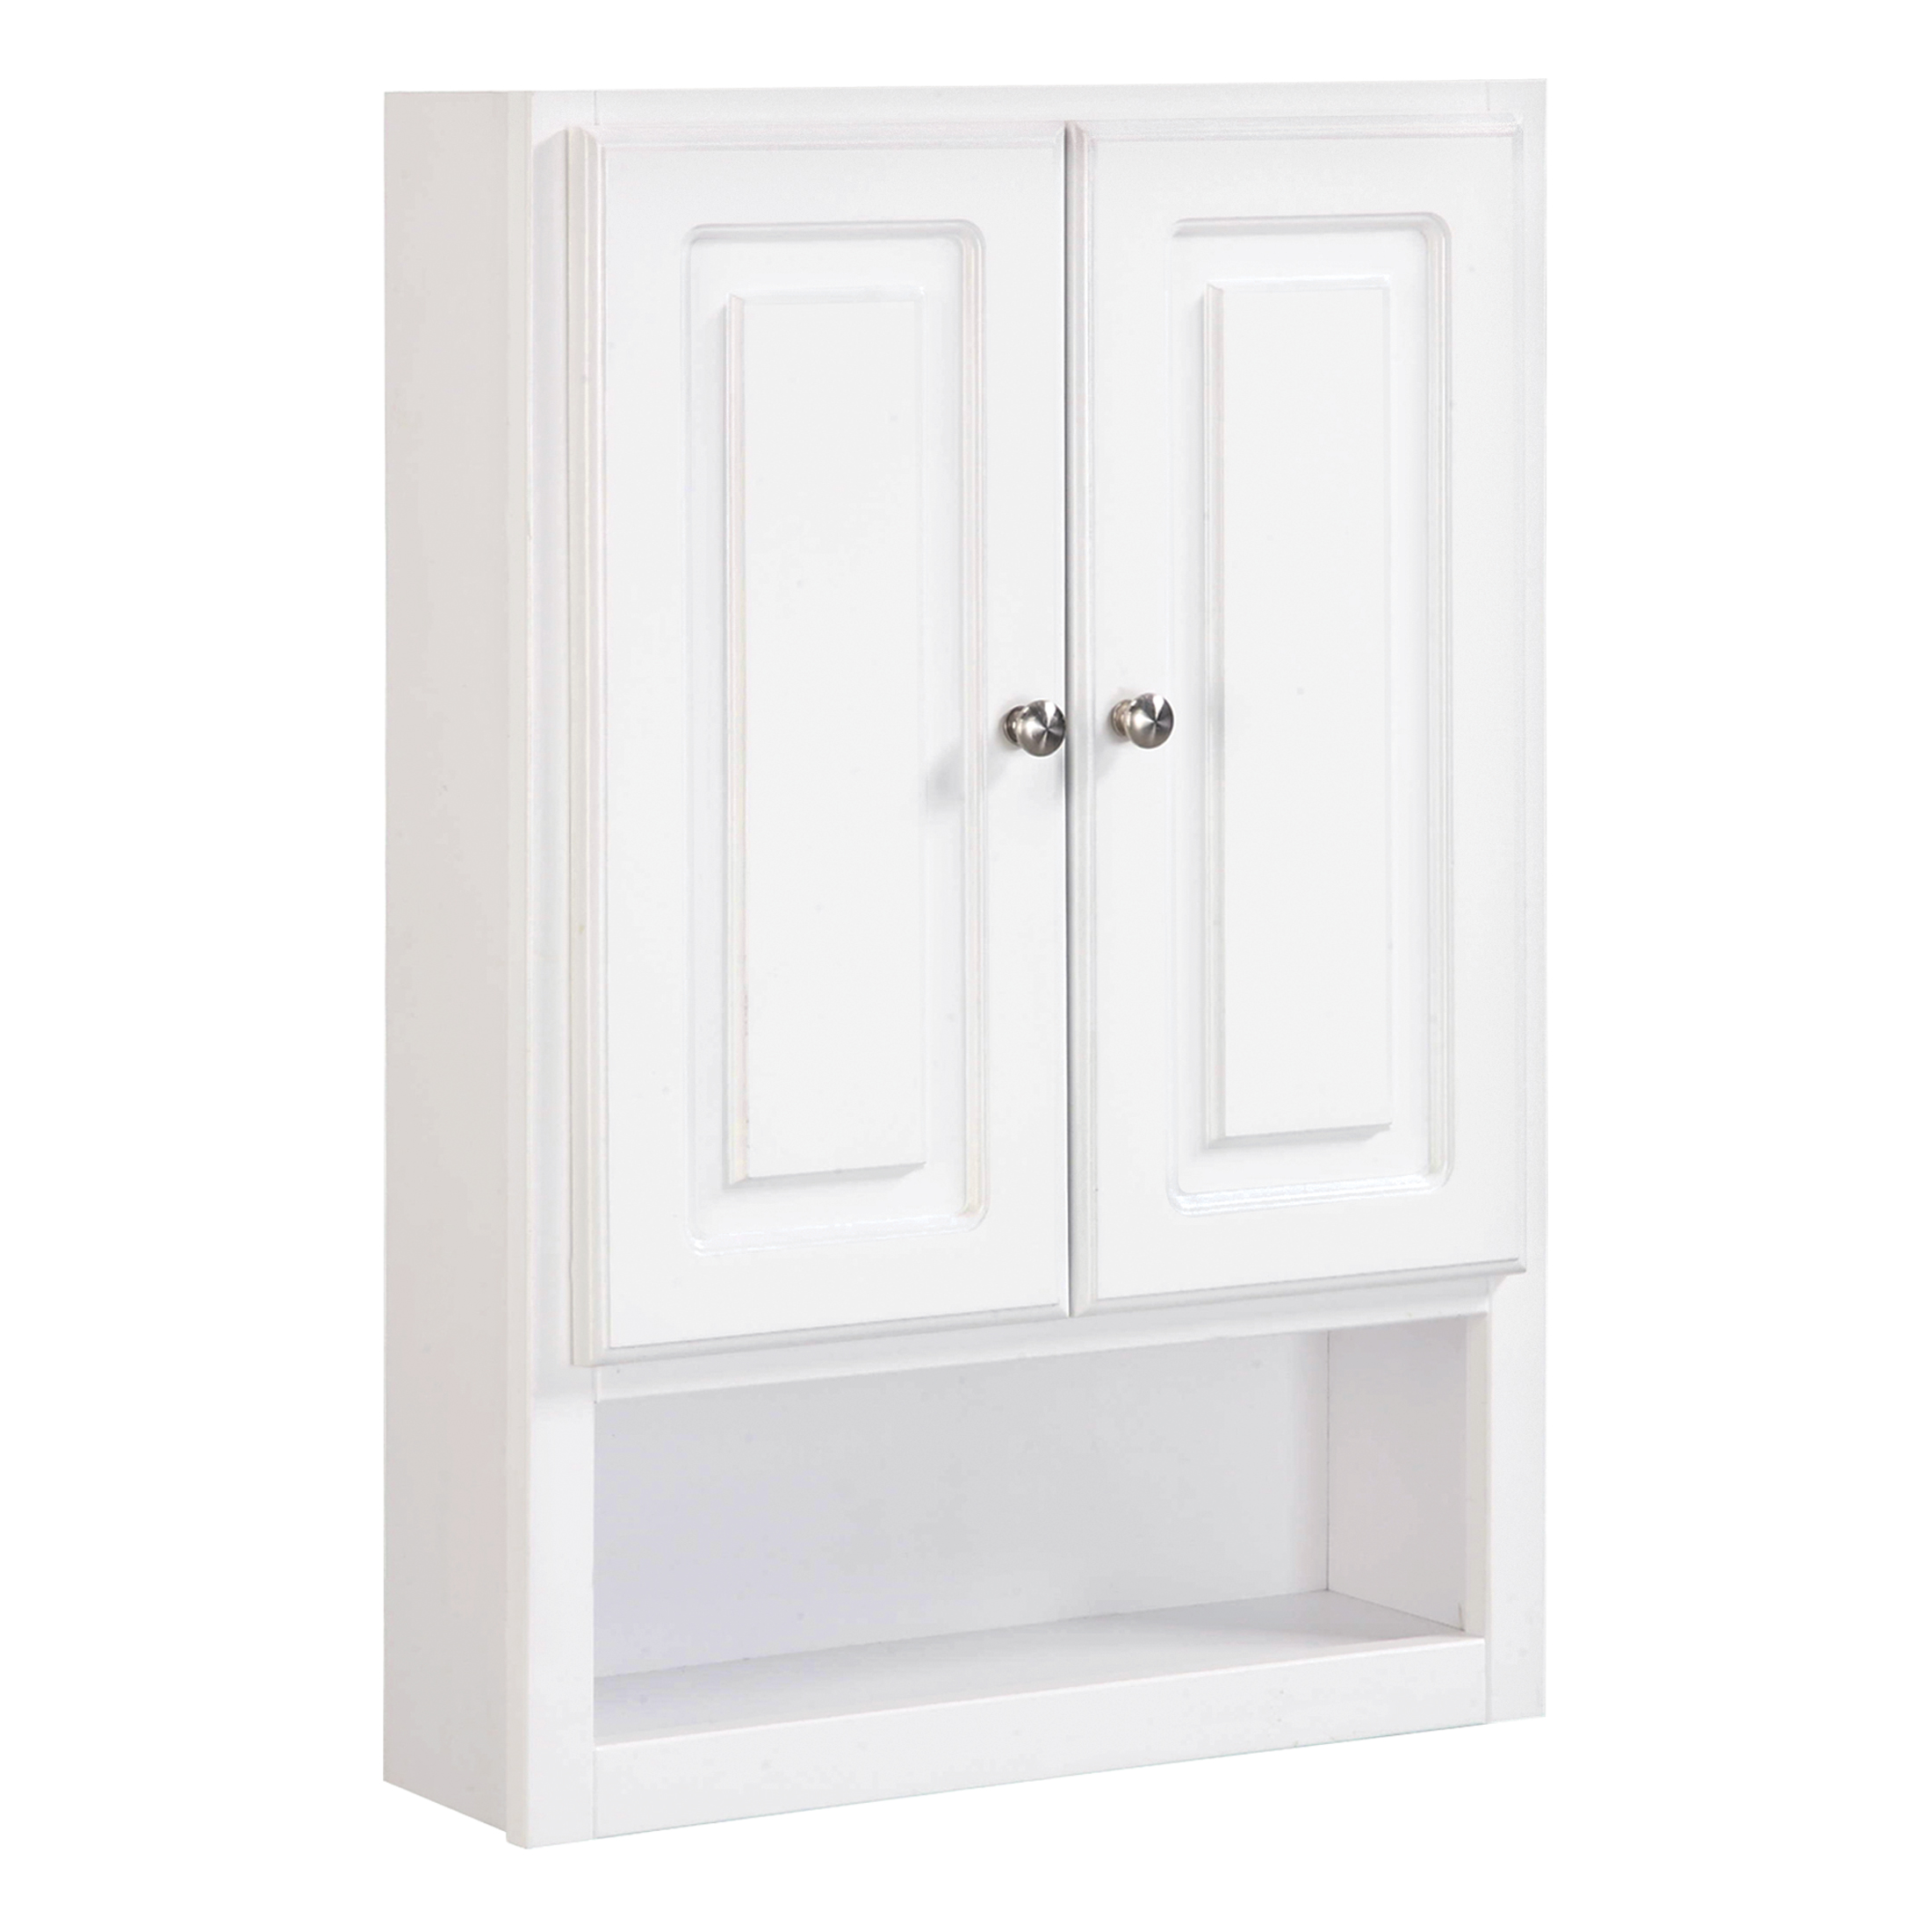 Concord 30X21 Bath Cabinet 531319 | Bath Furniture | Design House